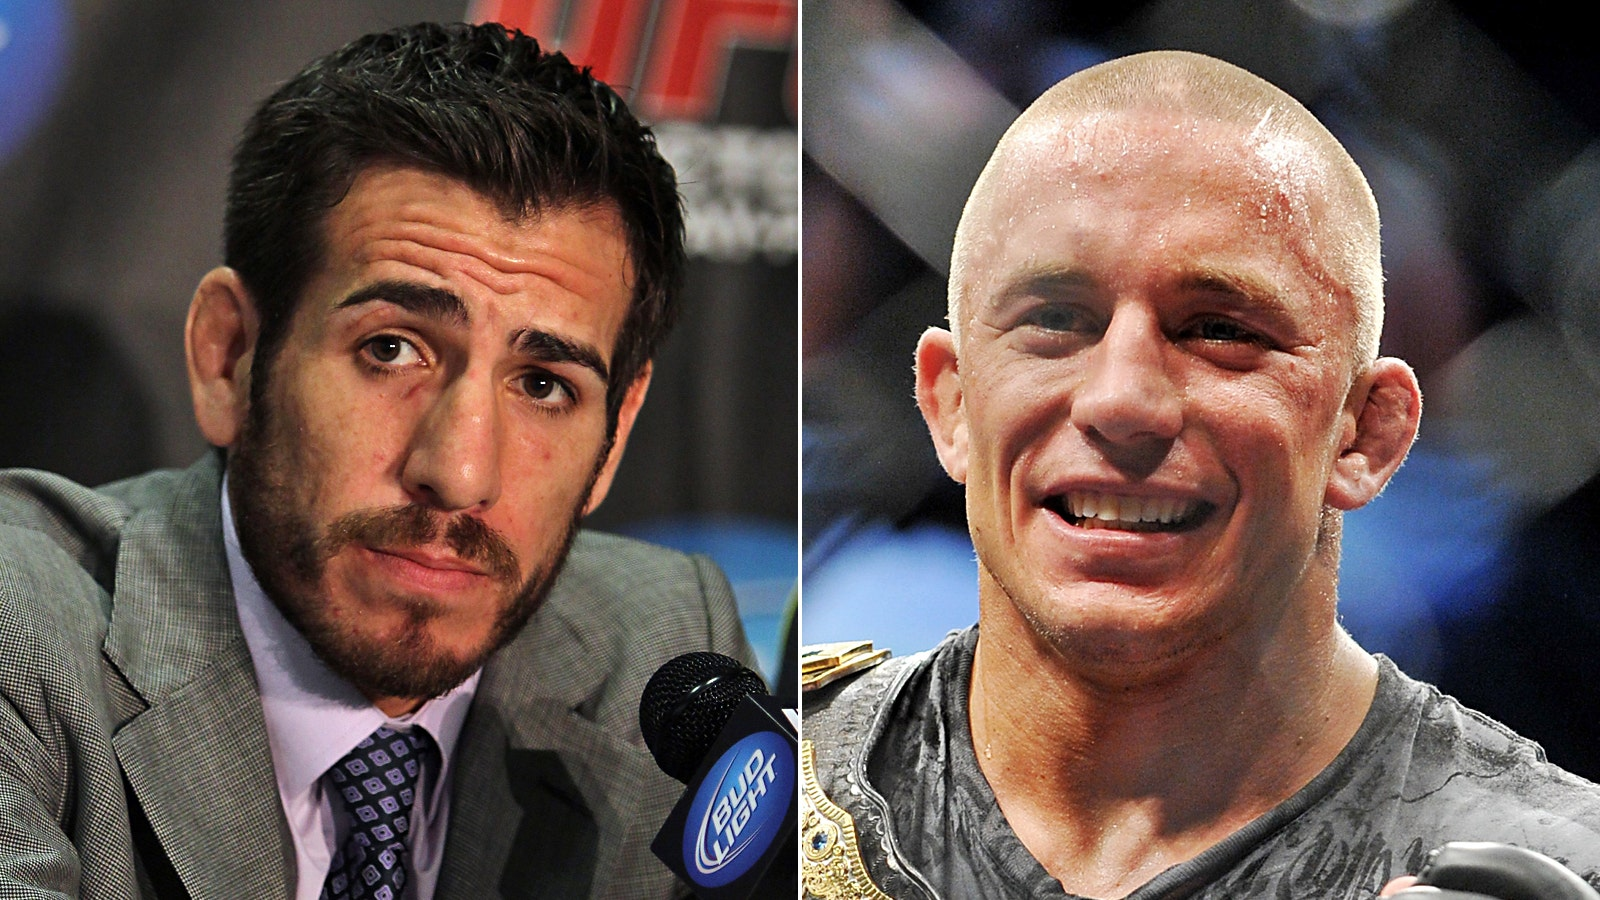 GSP's friend & training partner, Kenny Florian, opens up on